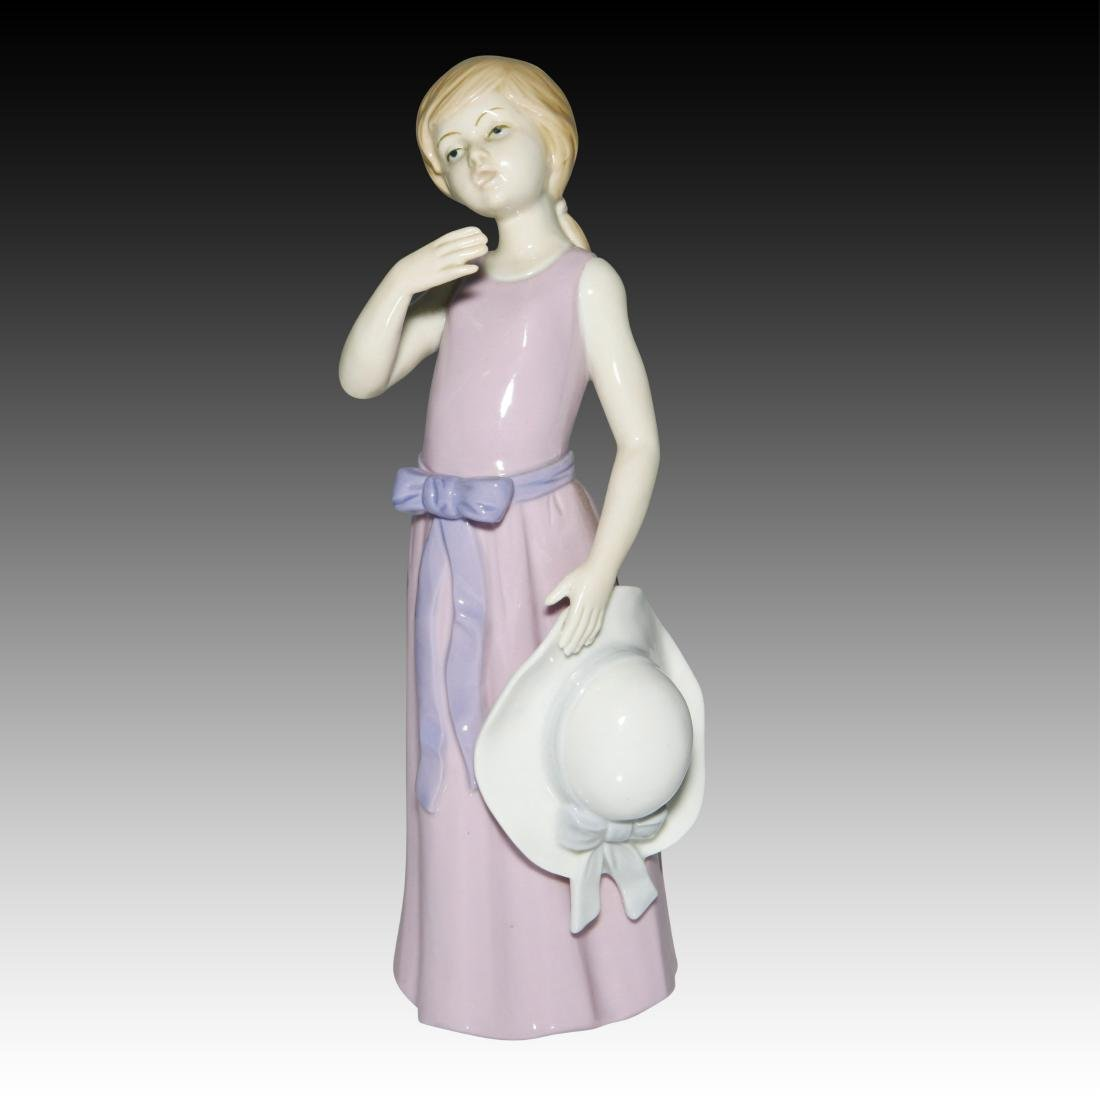 KPM Girl with the Lavender Dress Figurine